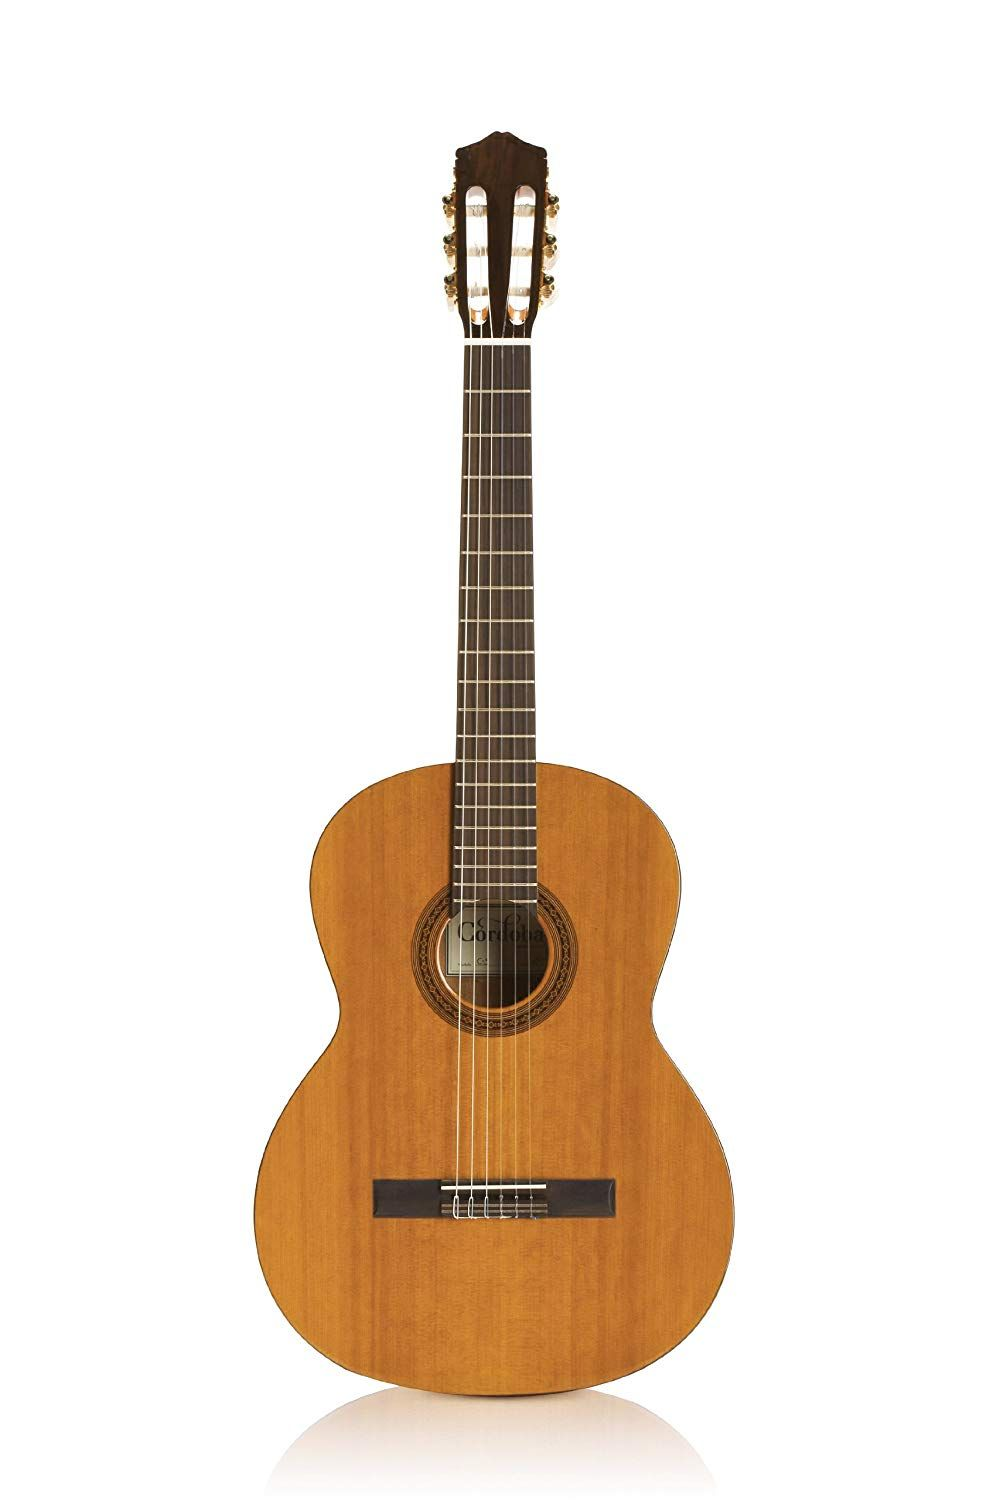 It Can Be Tricky Buying Your First Classical Guitar But Here Are A Few I Recommend Regularly To Students Here Classical Guitars For Sale Guitar Guitar Reviews